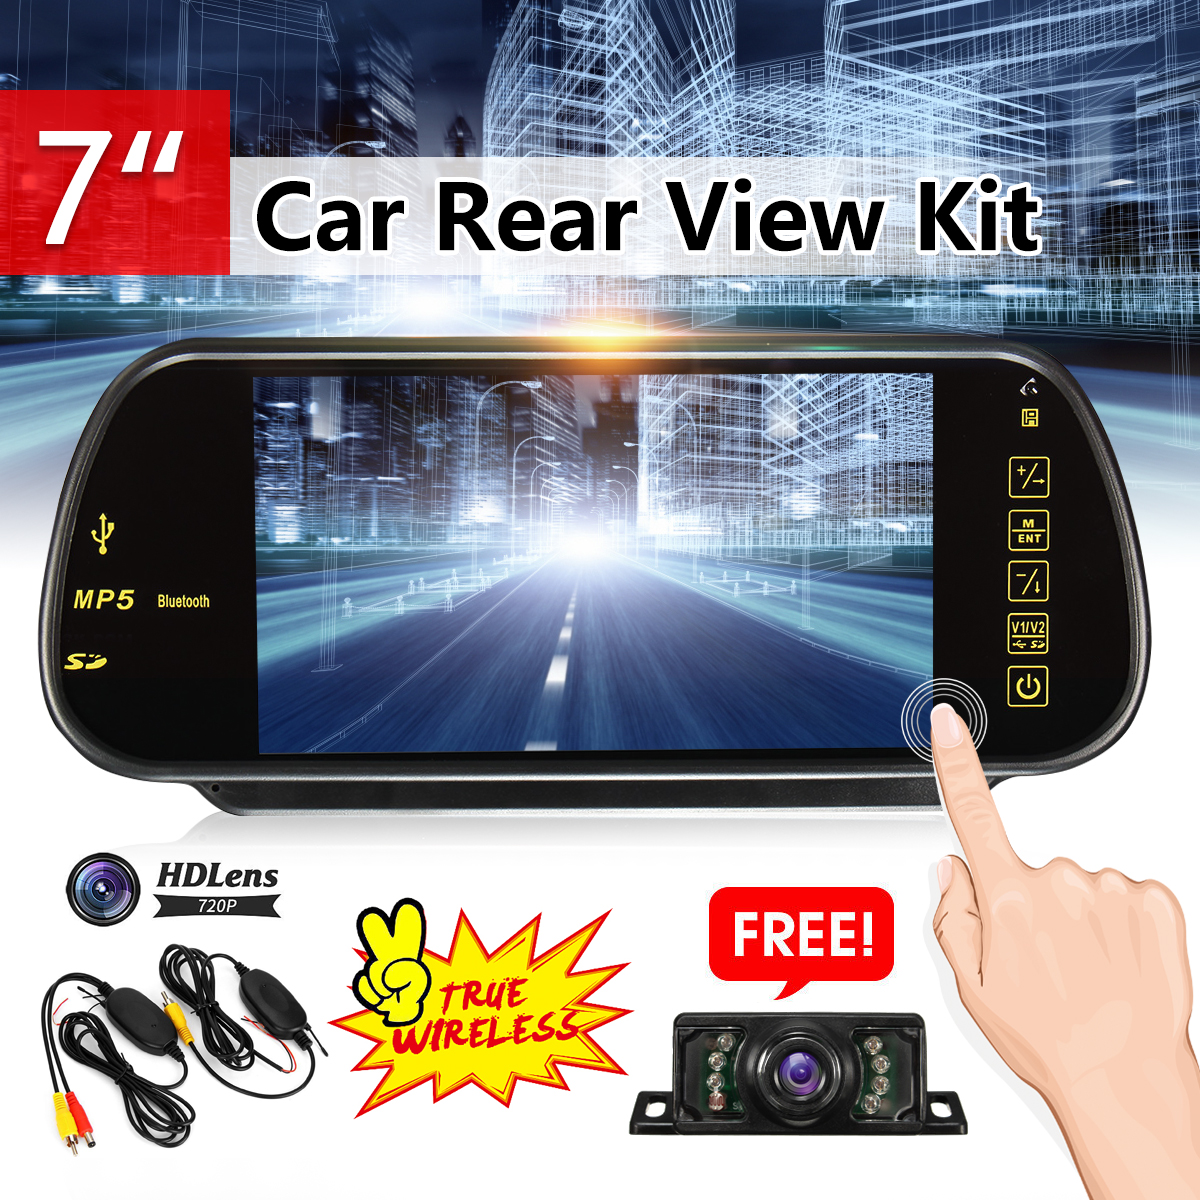 7 Inch LCD T ouch Screen bluetooth Car MP5 Player Radio Reversing Backup Rearview Camera Parking Mirror Monitor Remote Control7 Inch LCD T ouch Screen bluetooth Car MP5 Player Radio Reversing Backup Rearview Camera Parking Mirror Monitor Remote Control